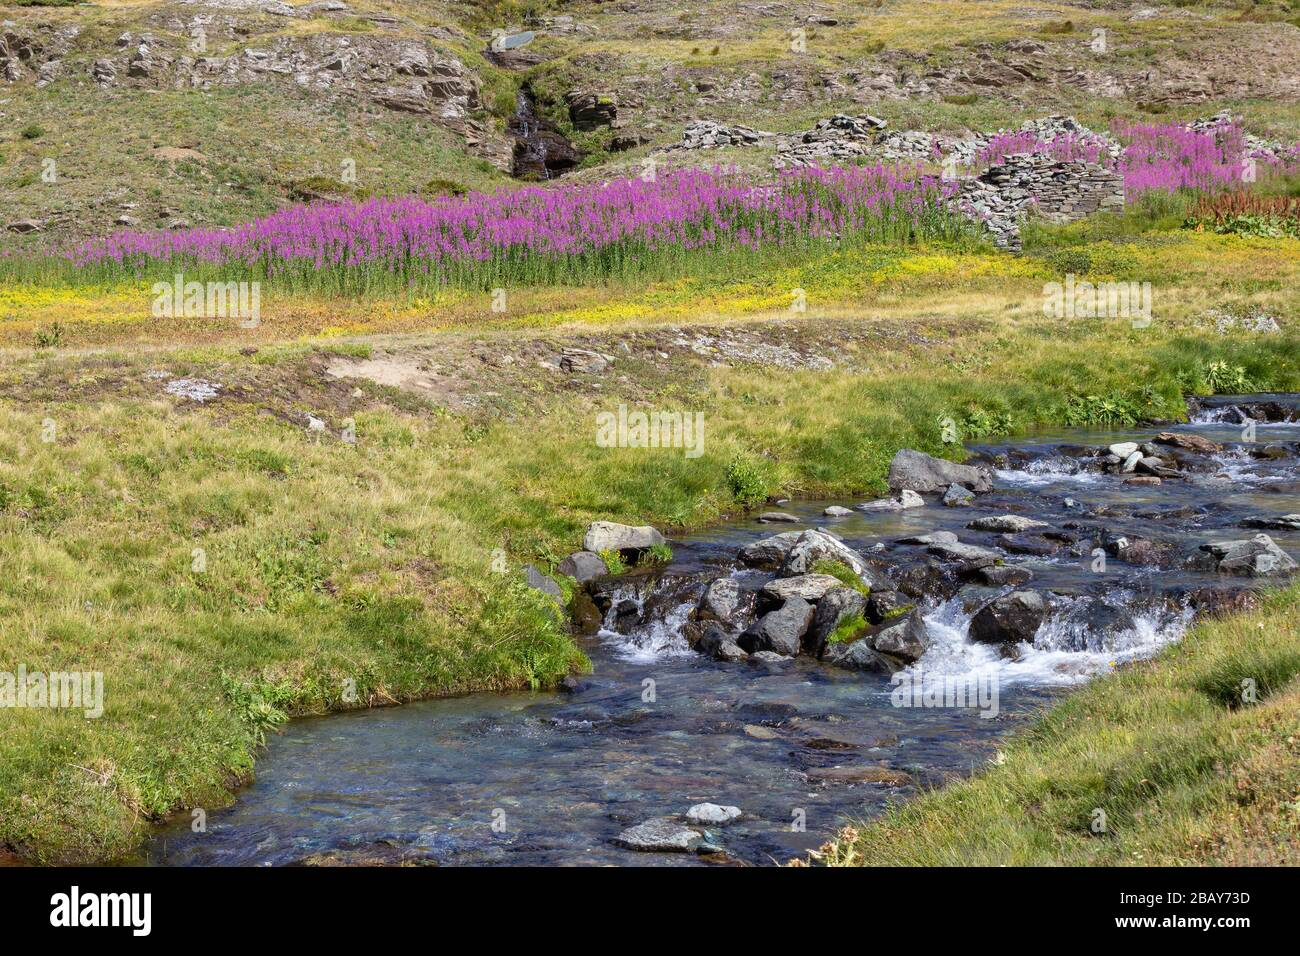 Hiking trail in Aosta valley. Blooming  Chamaenerion angustifolium in the background and a wild mountain stream in the foreground. Stock Photo